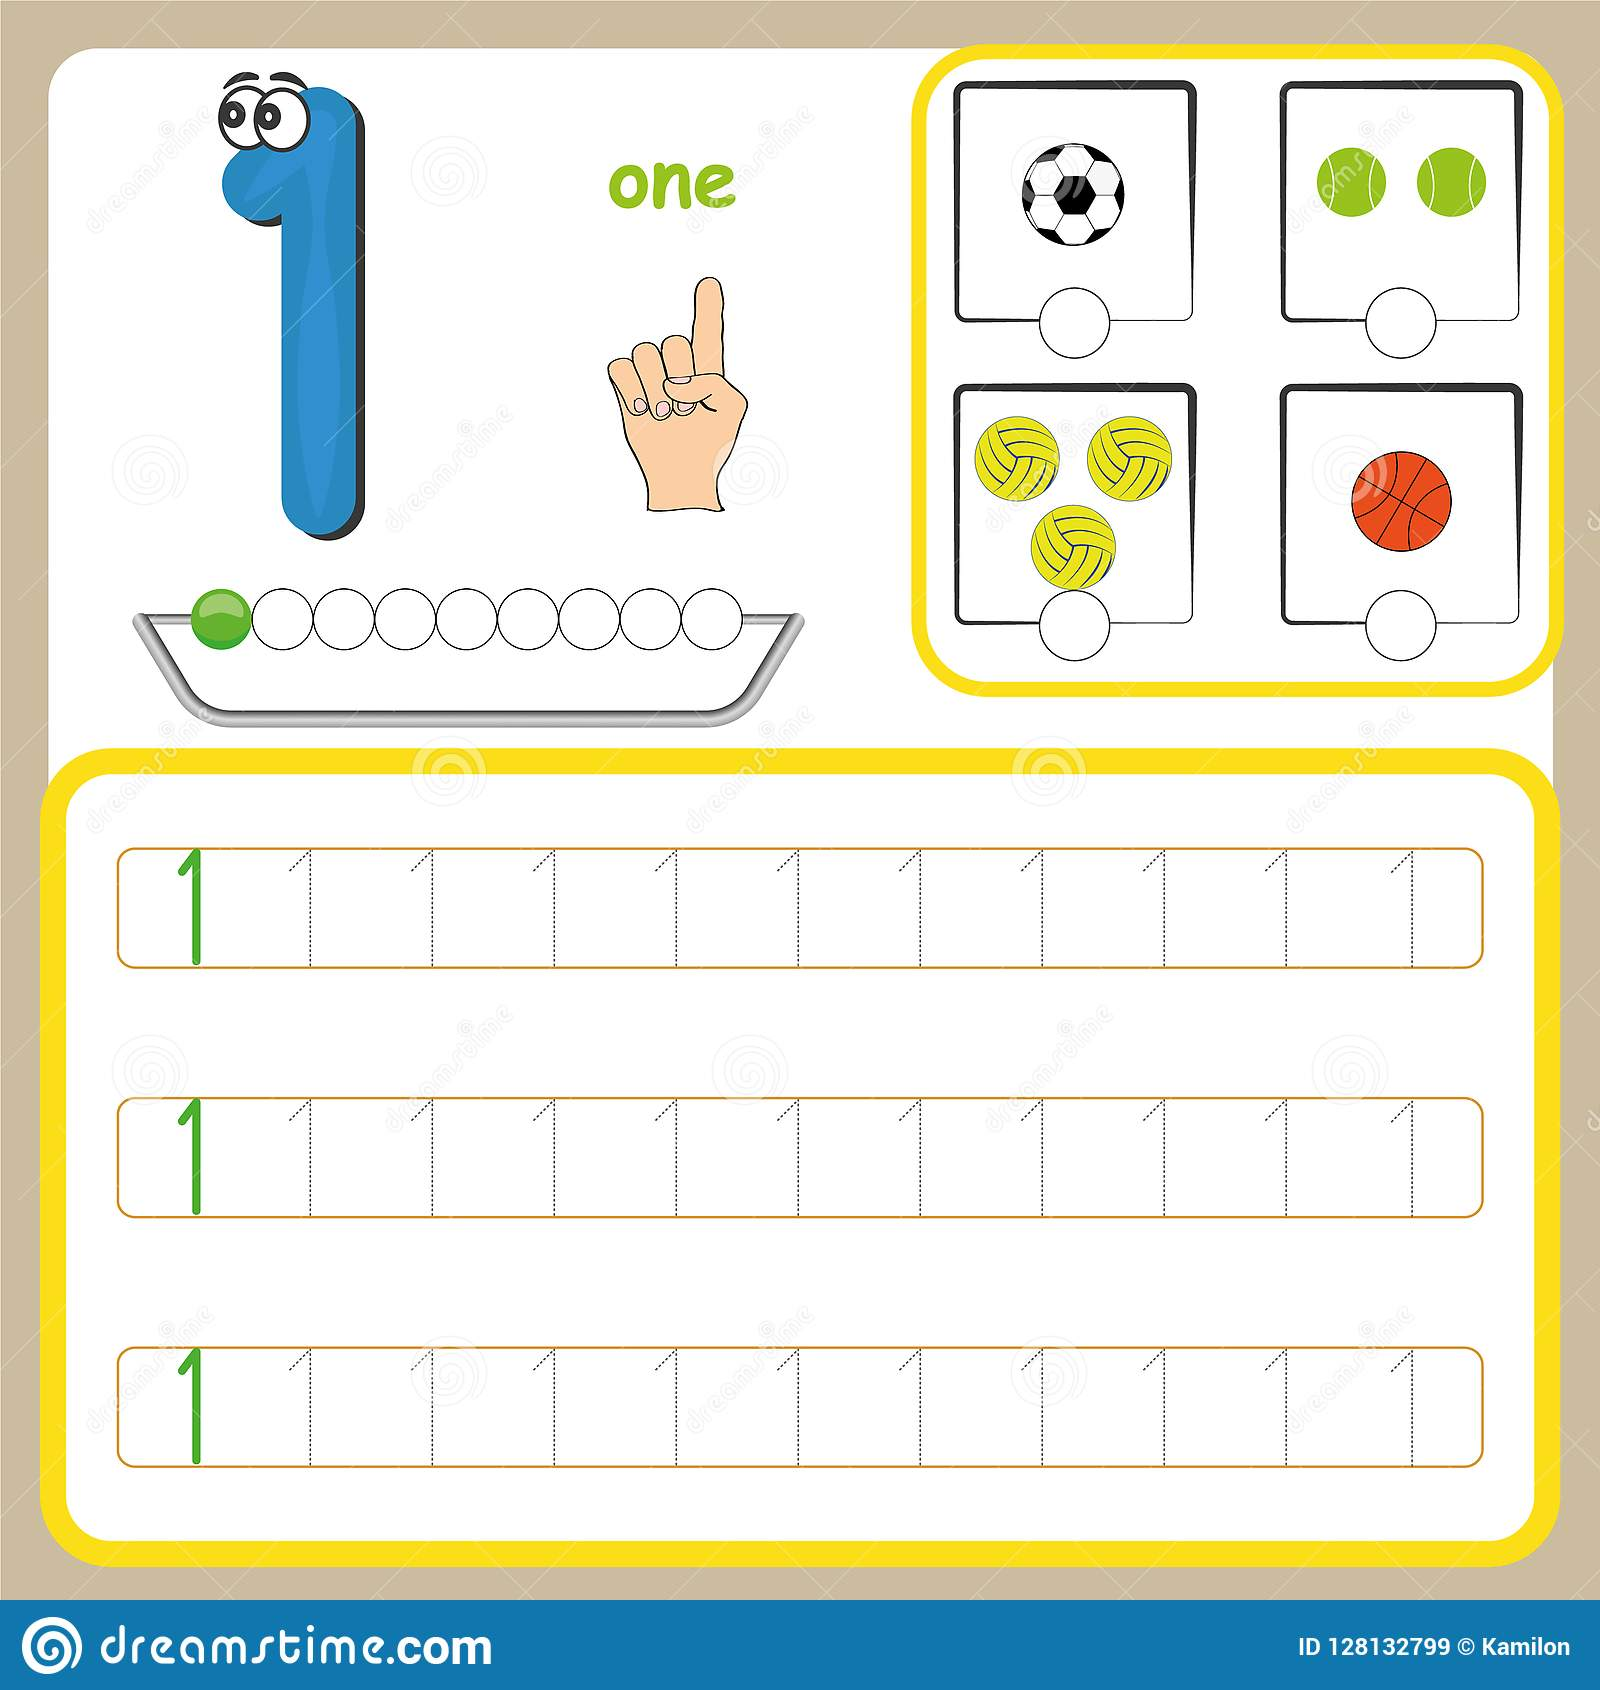 Number Cards Counting And Writing Numbers Learning Numbers Numbers Tracing Worksheet For